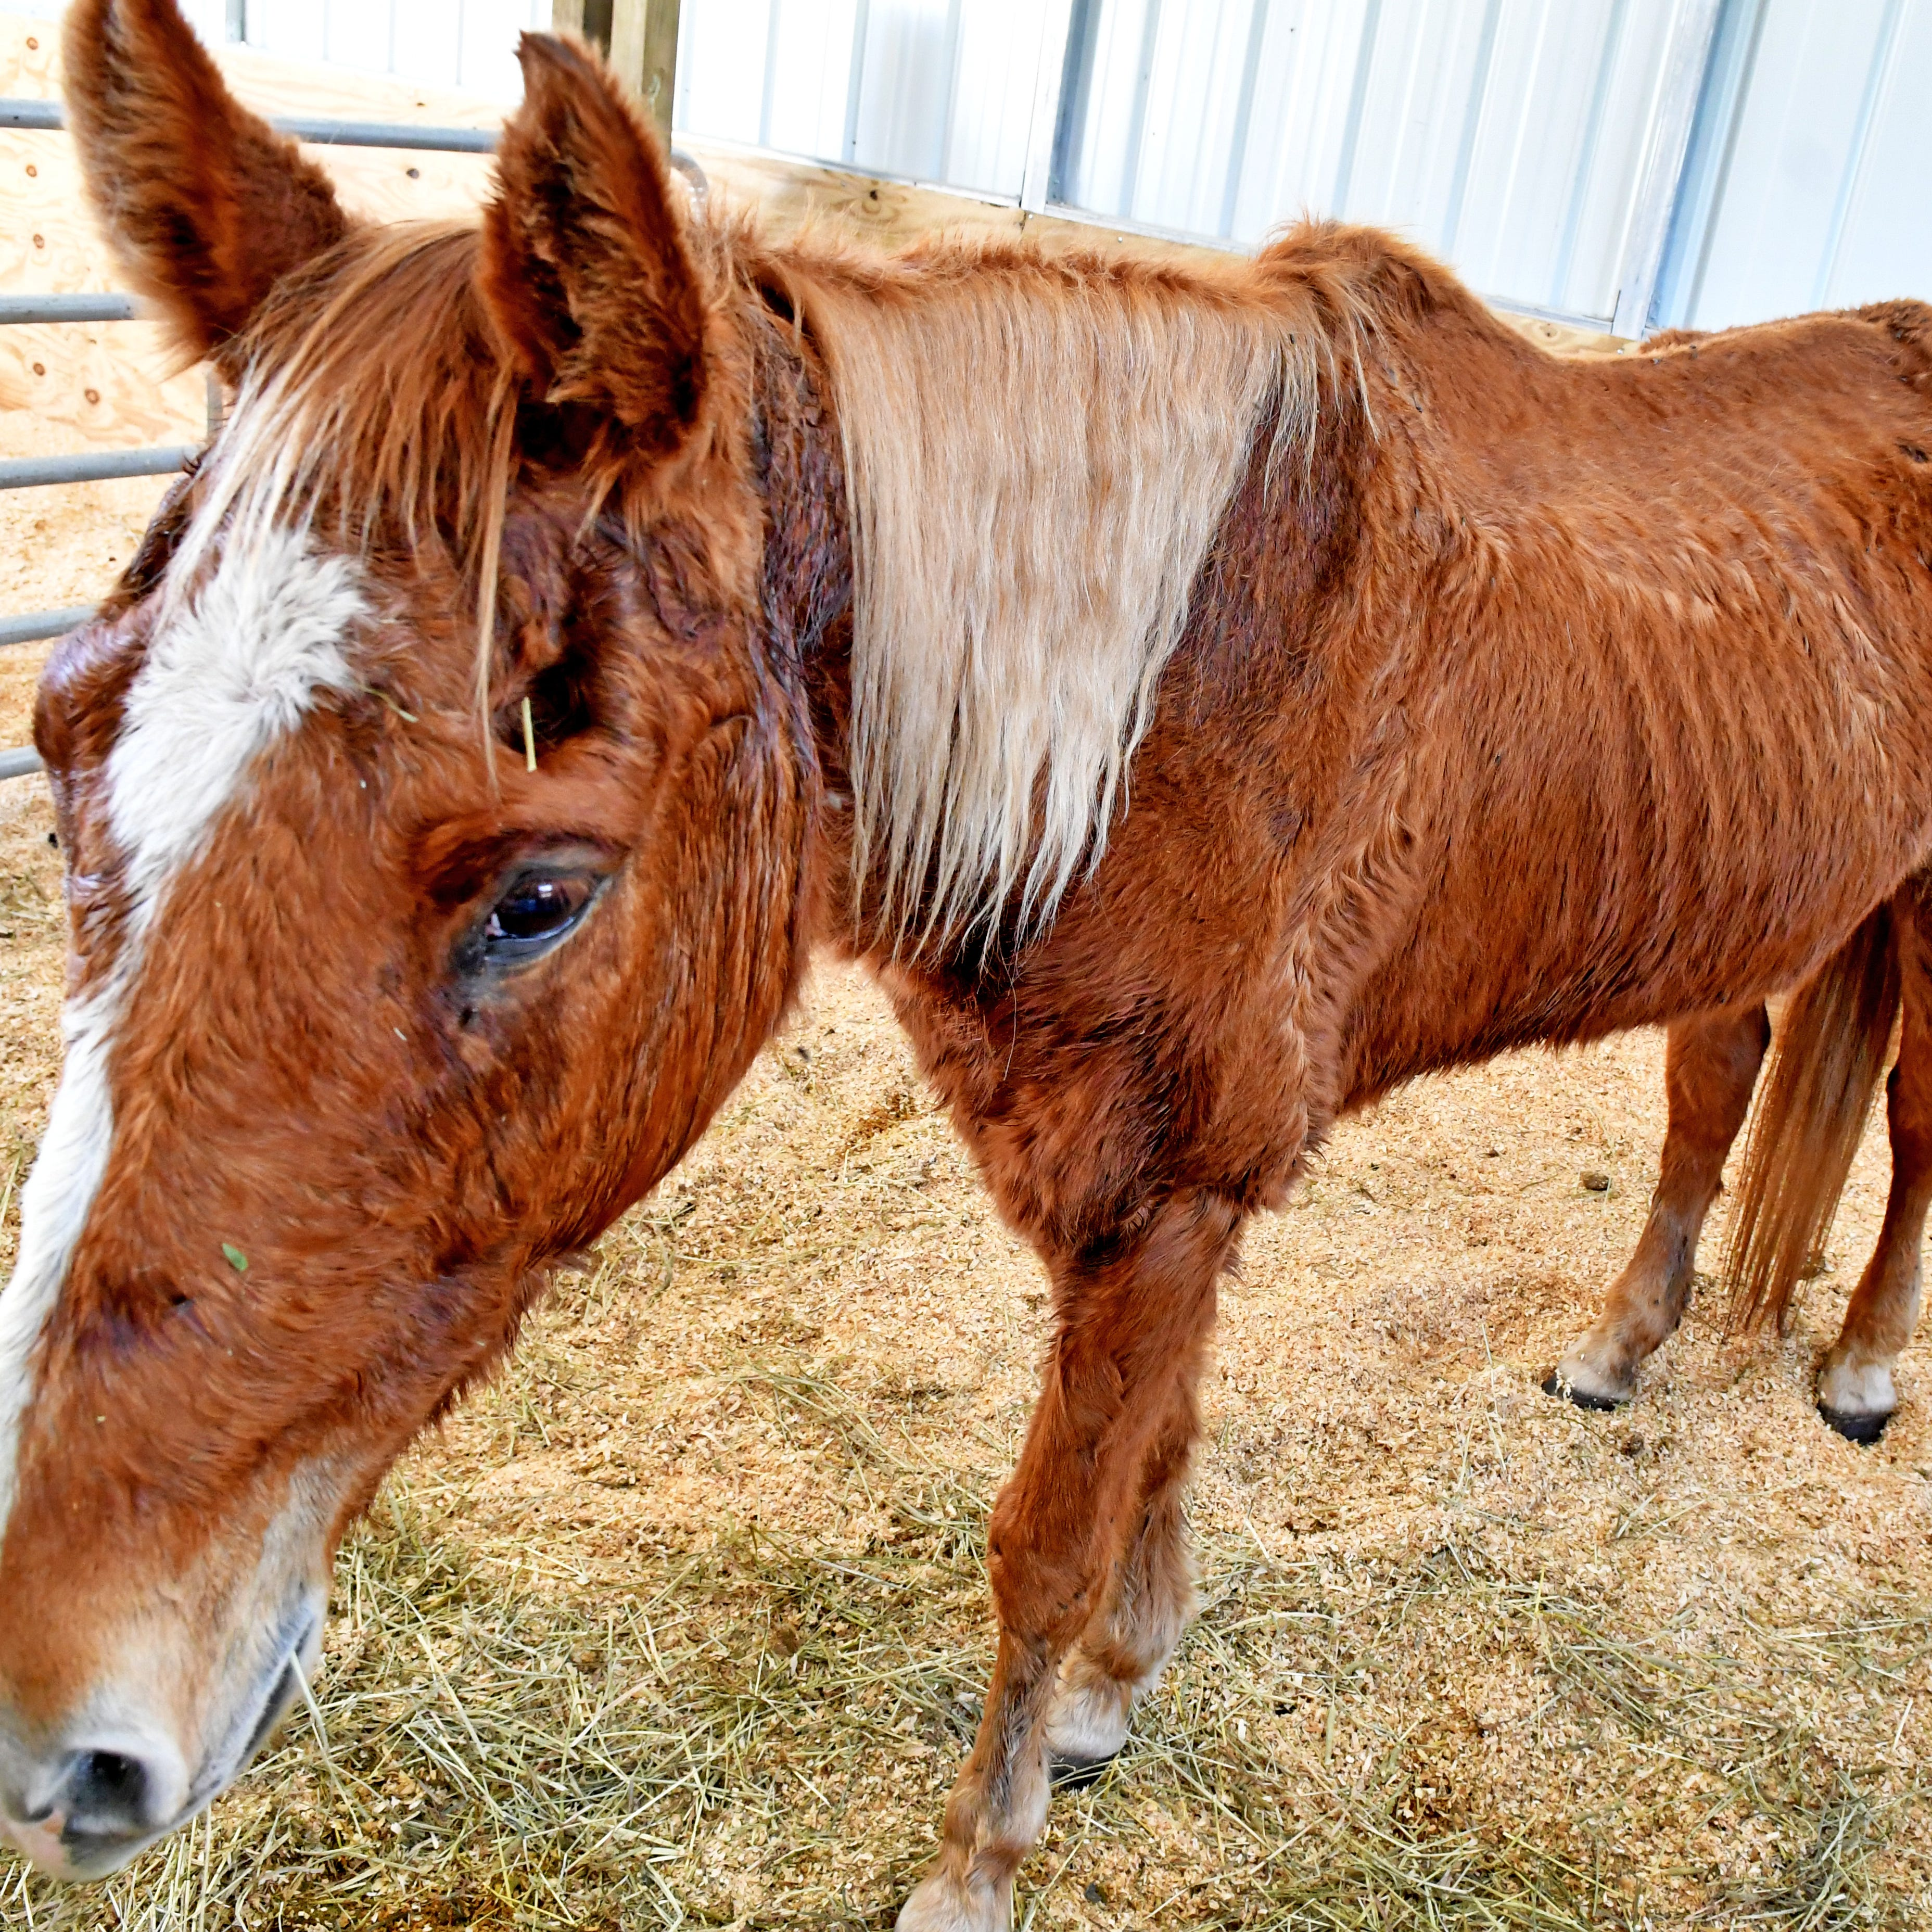 Starving horses seized from Mims 'improving daily,' but fate uncertain, officials say